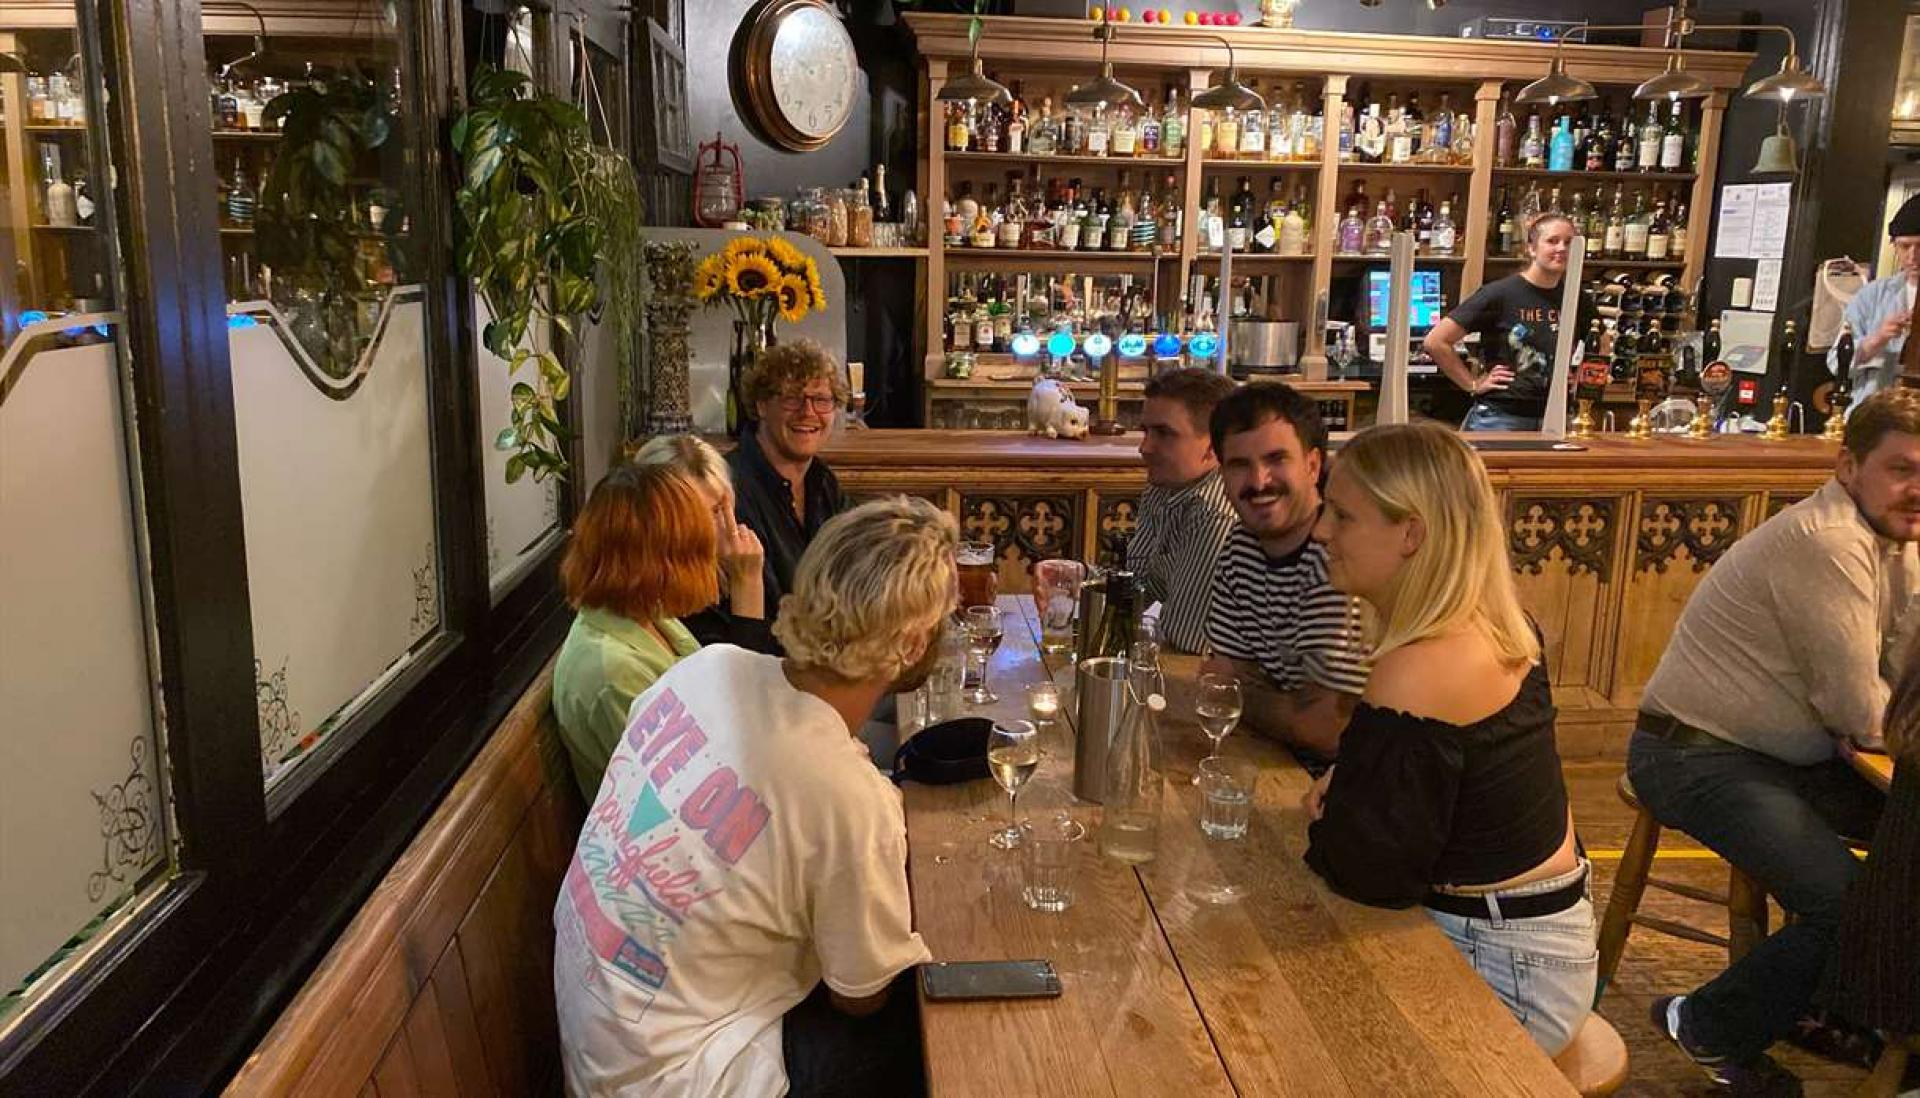 Places to drink in Exeter: The Fat Pig